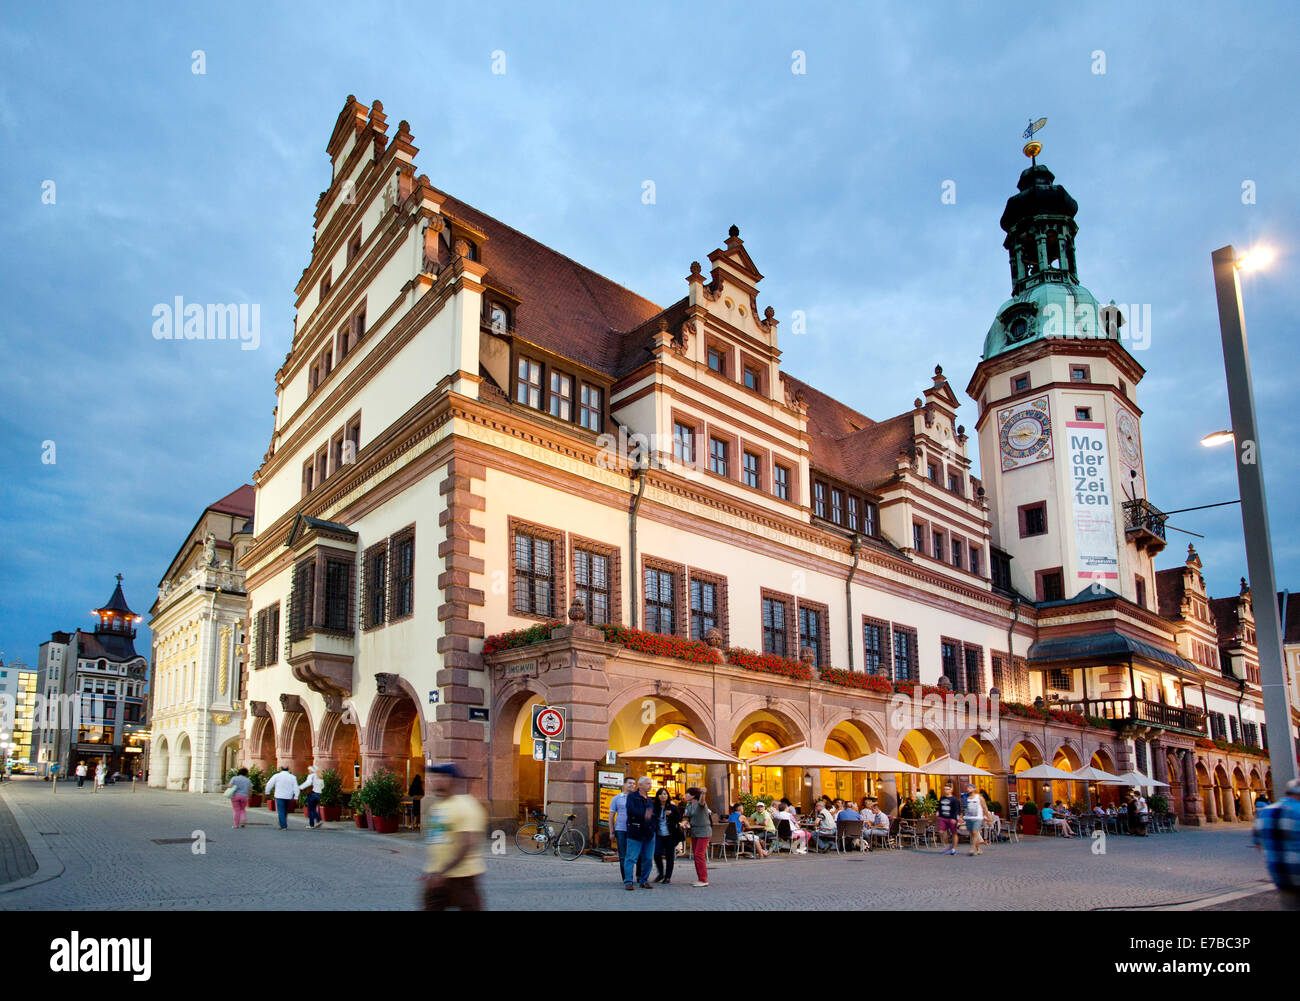 Market Square In Leipzig Germany Stock Photo Alamy